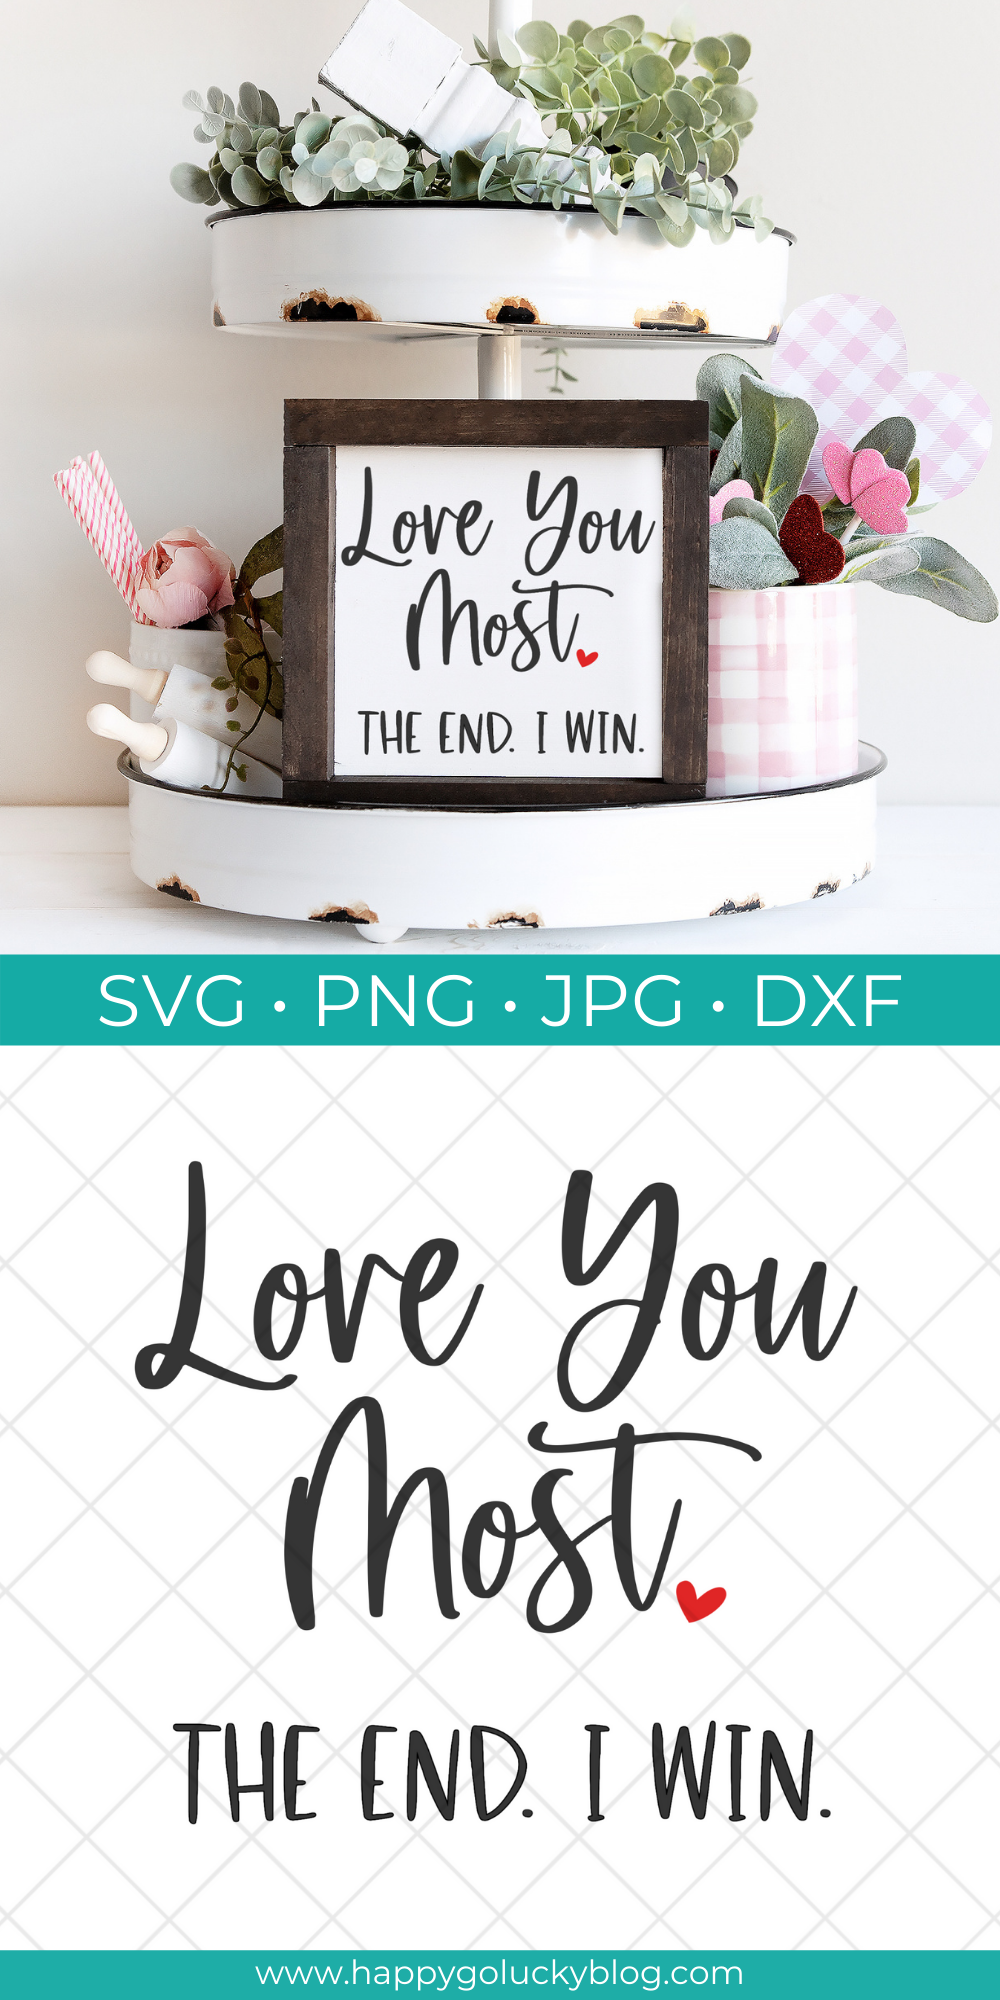 Love You Most SVG Cut file displayed on small wood sign for Valentine's Day.